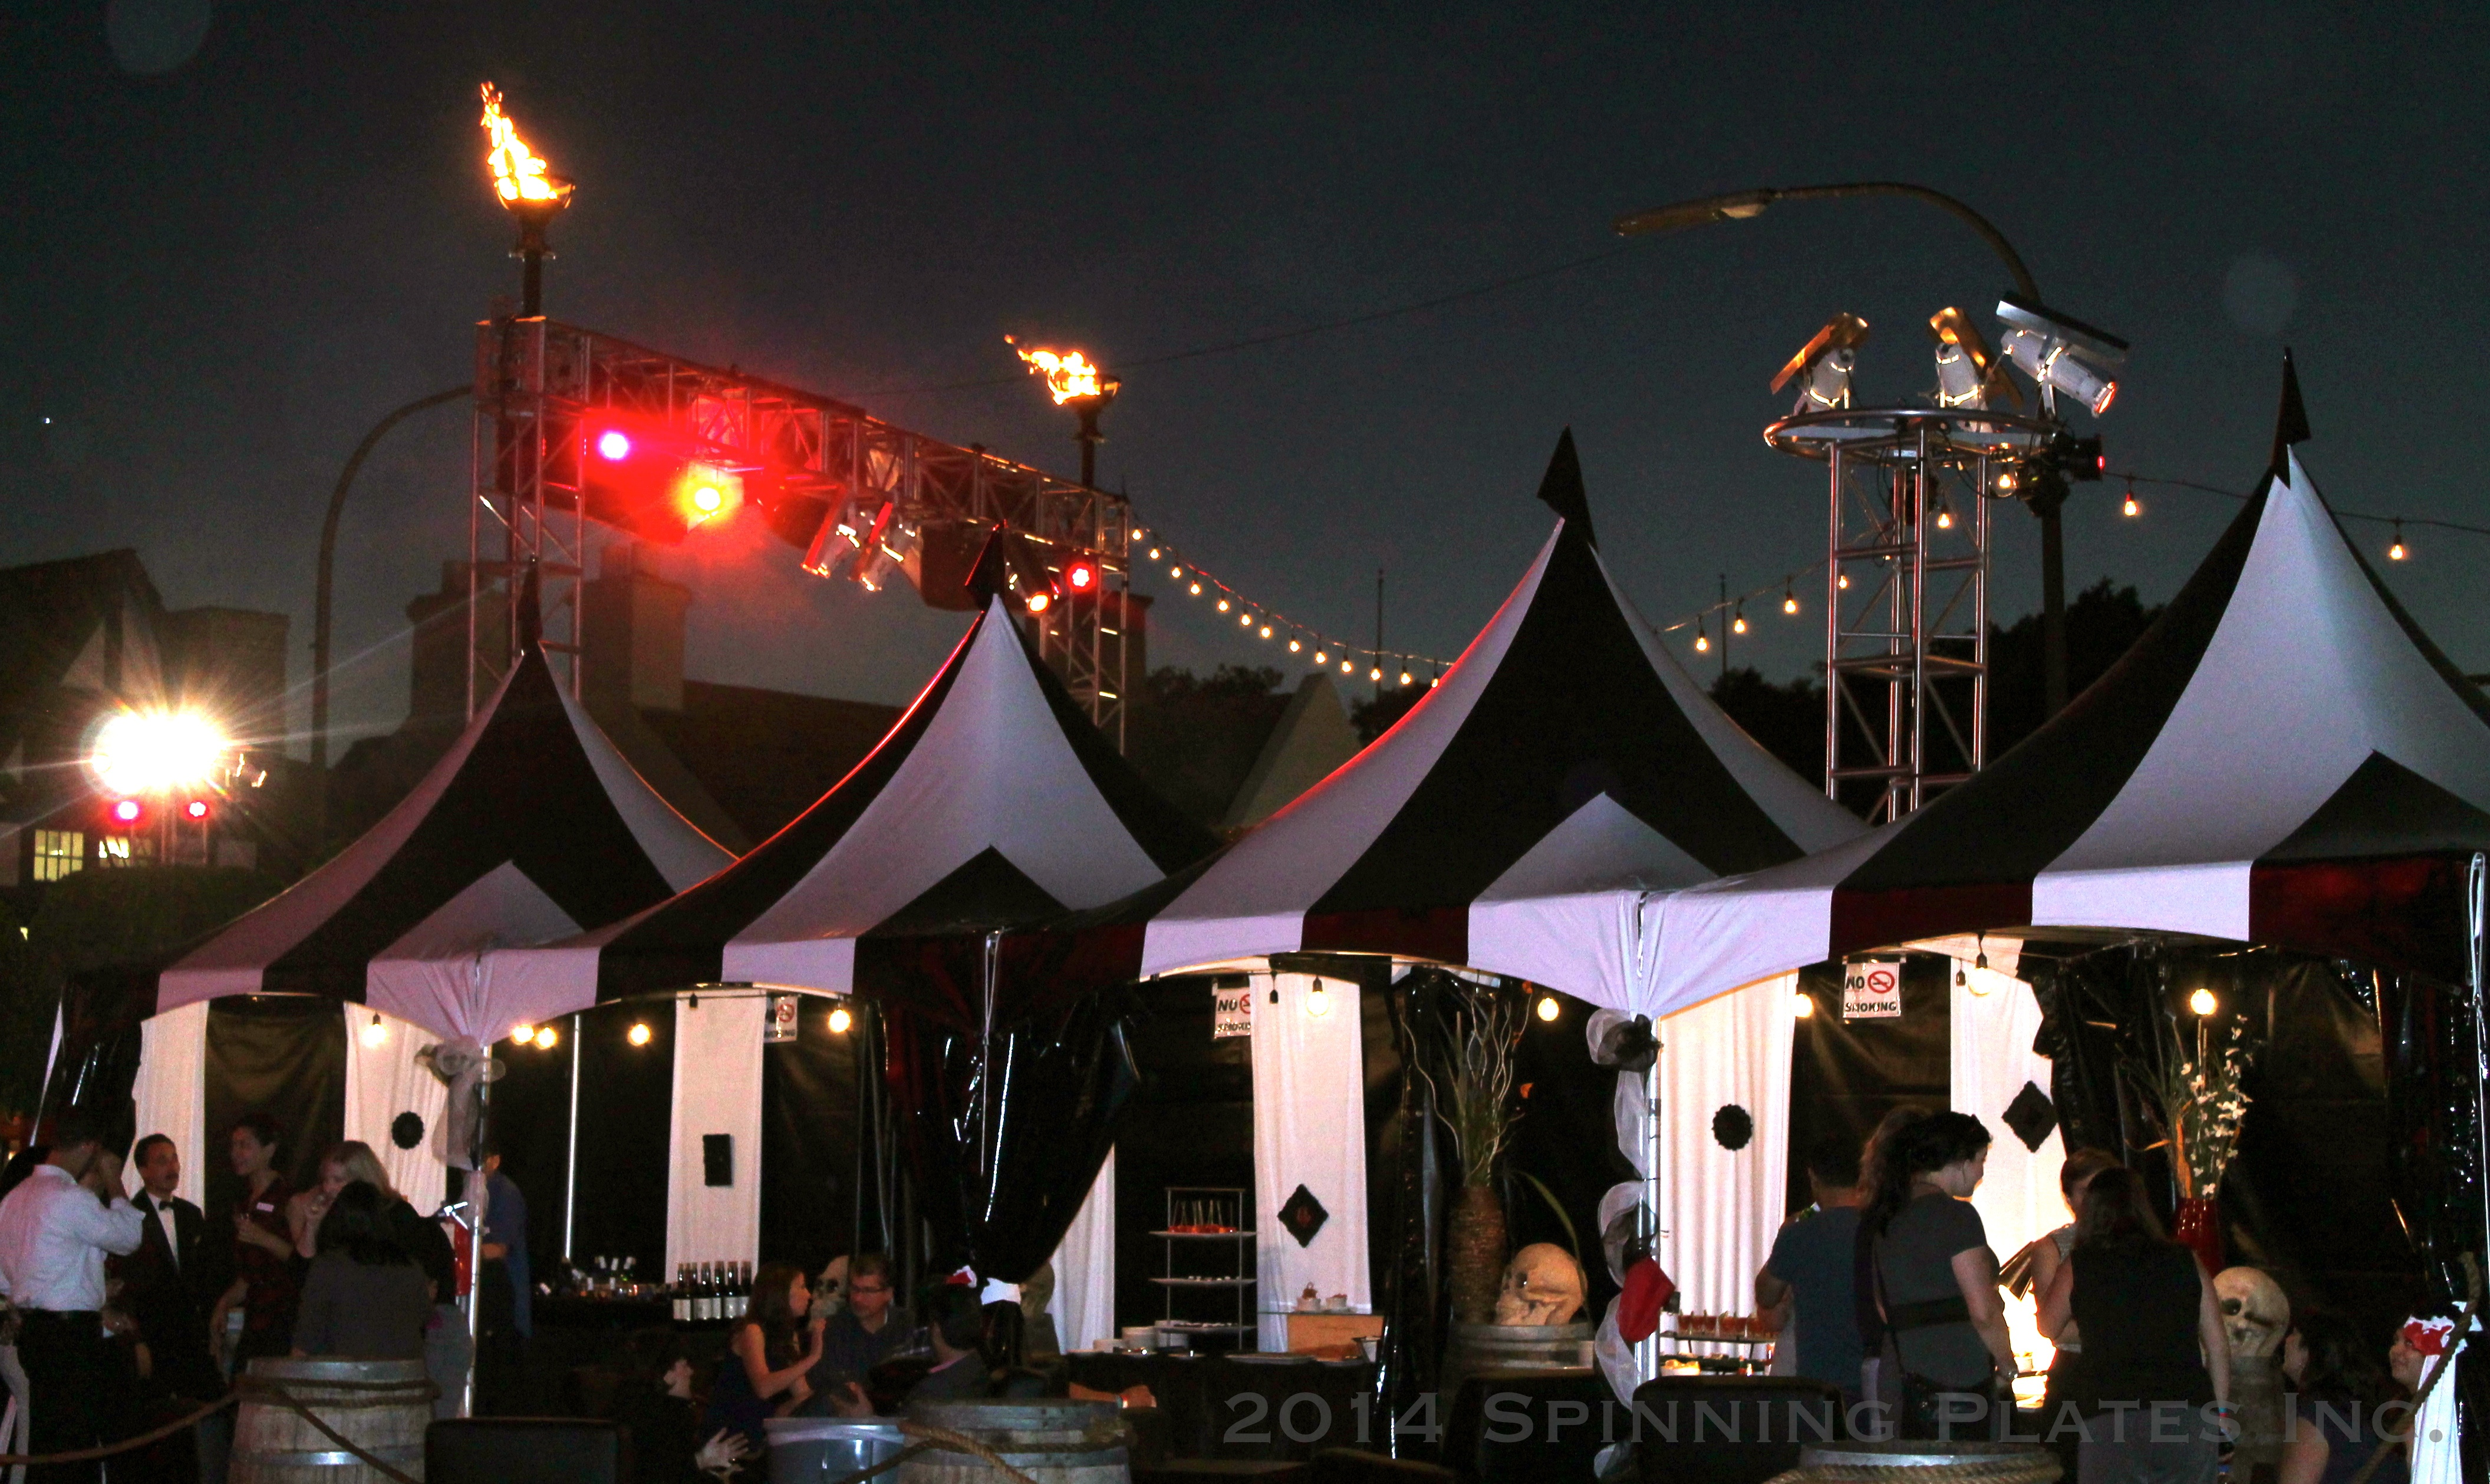 DARK HARBOR at the Queen Mary 2014   Spinning Plates Inc.